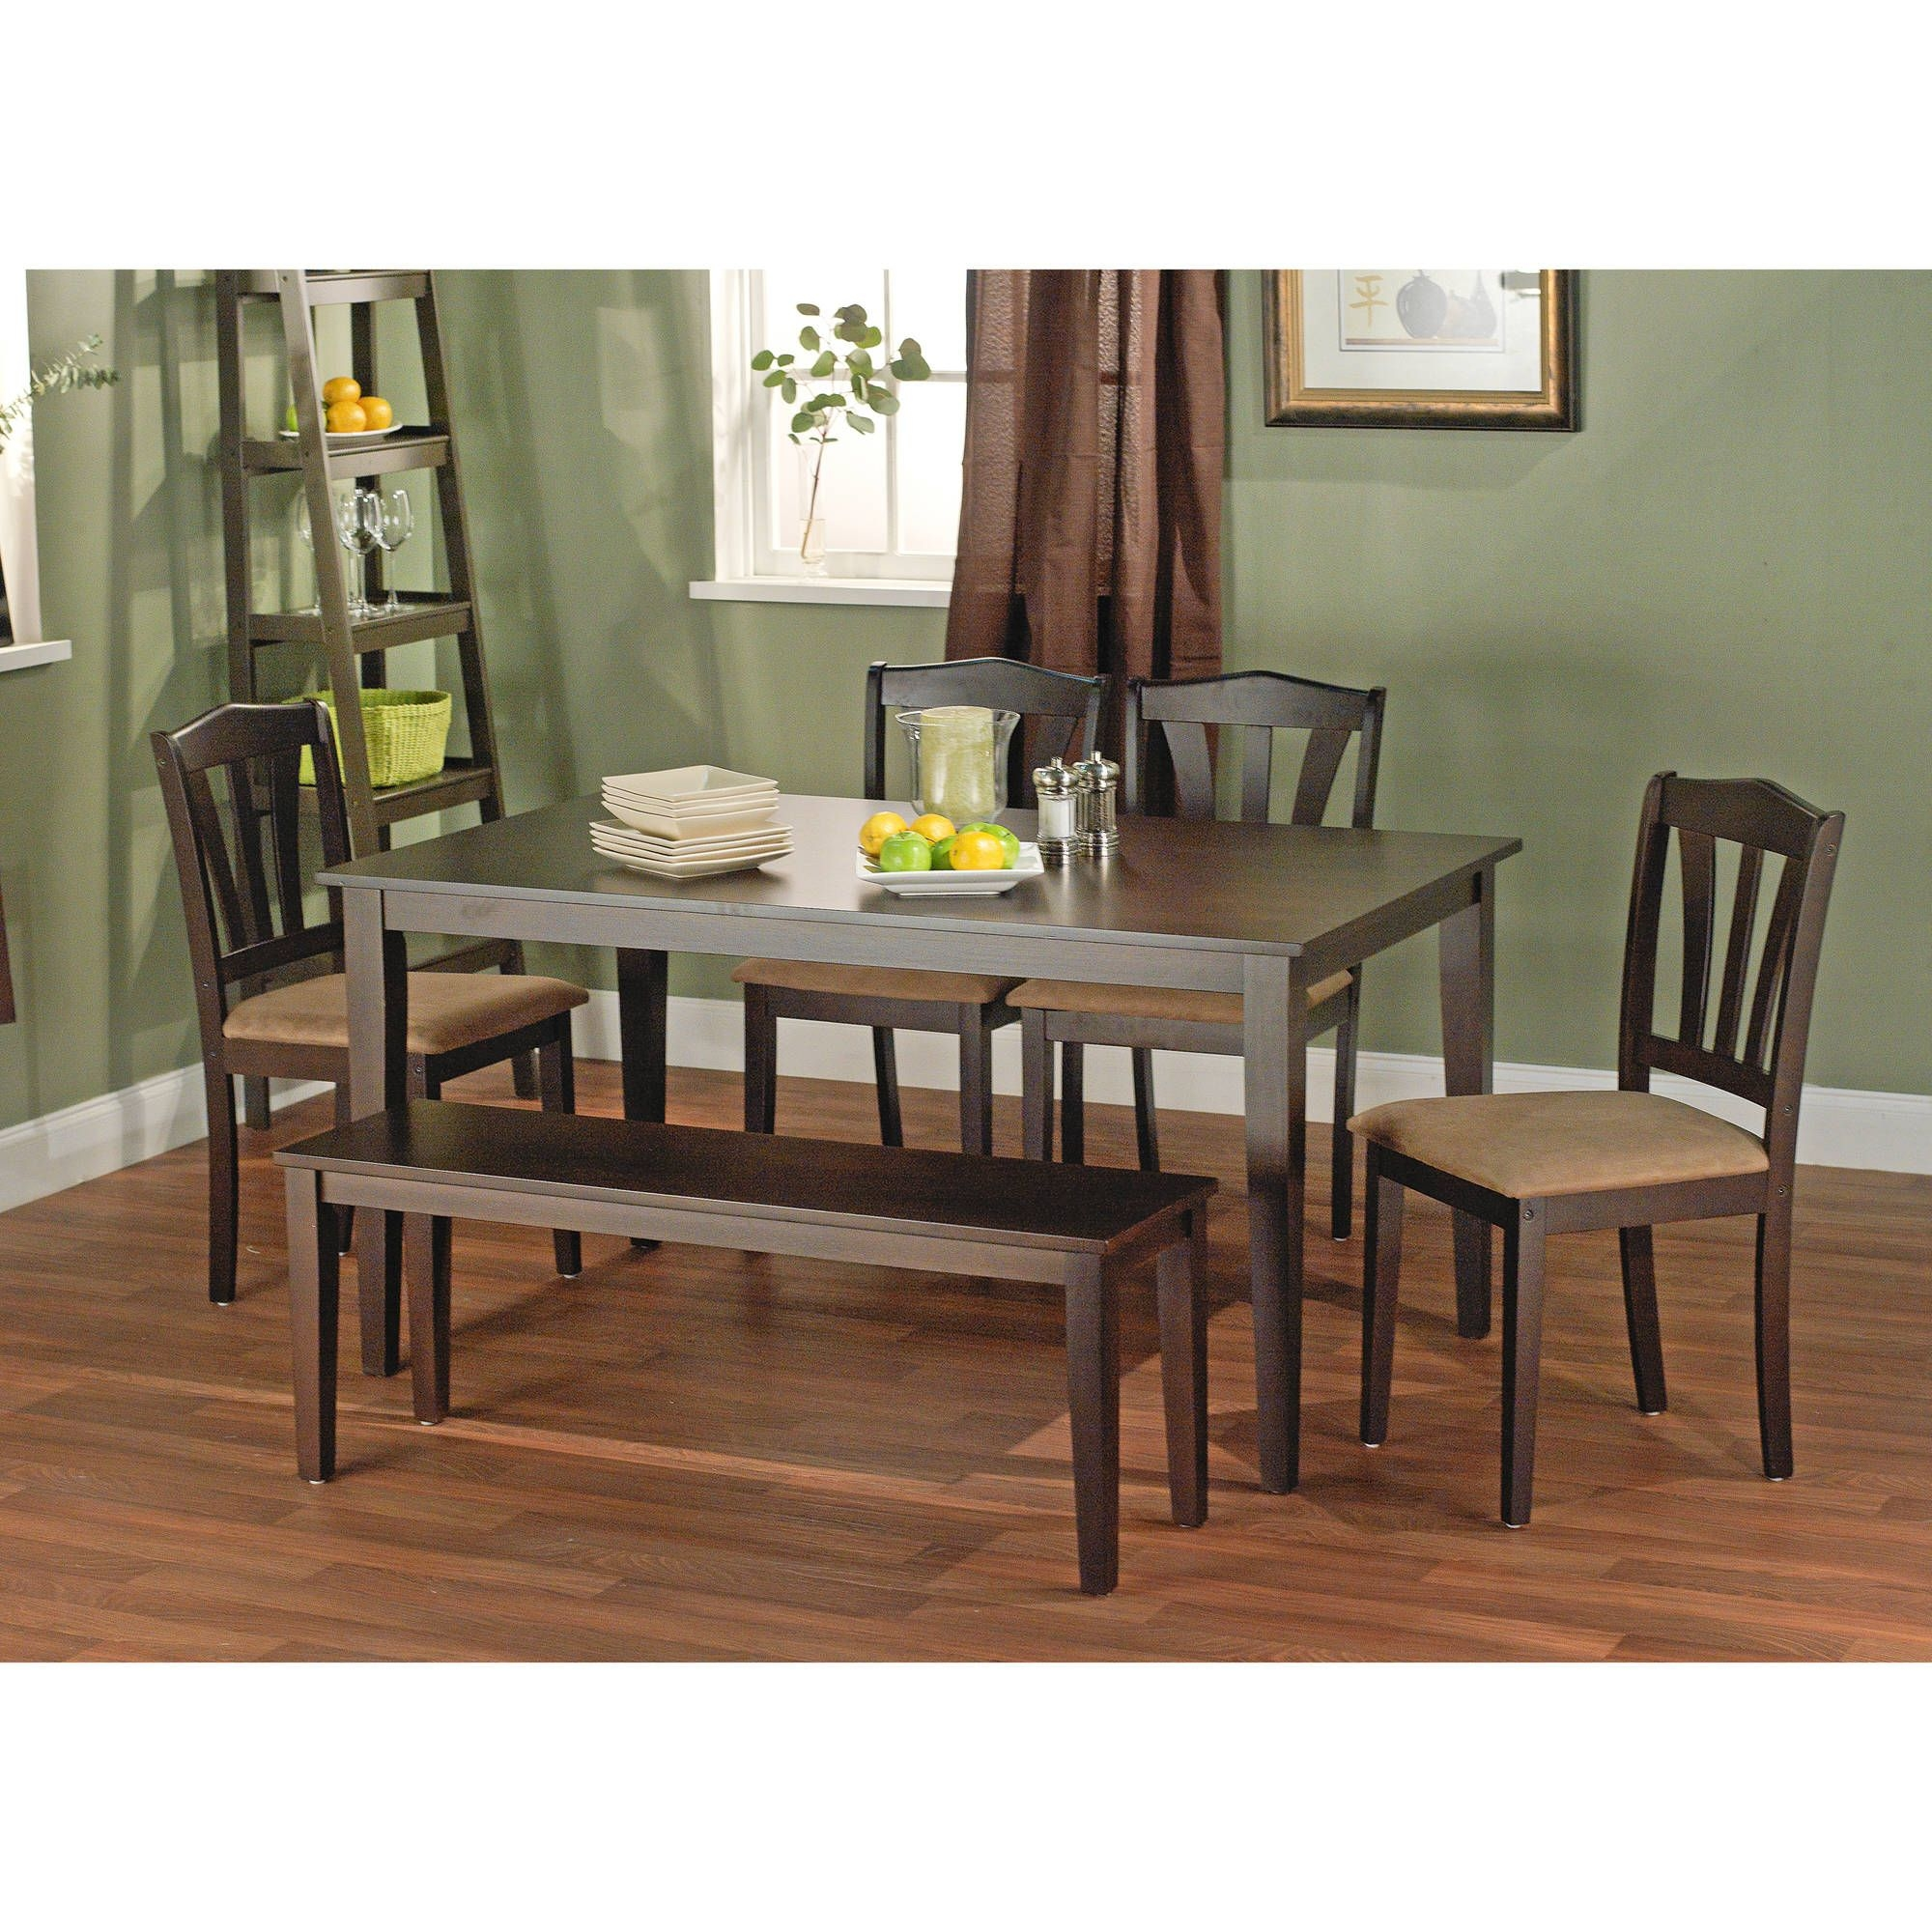 Dining Room Walmart Dining Room Chairs For Cozy Your Dining Furniture Ideas — Underpassbar